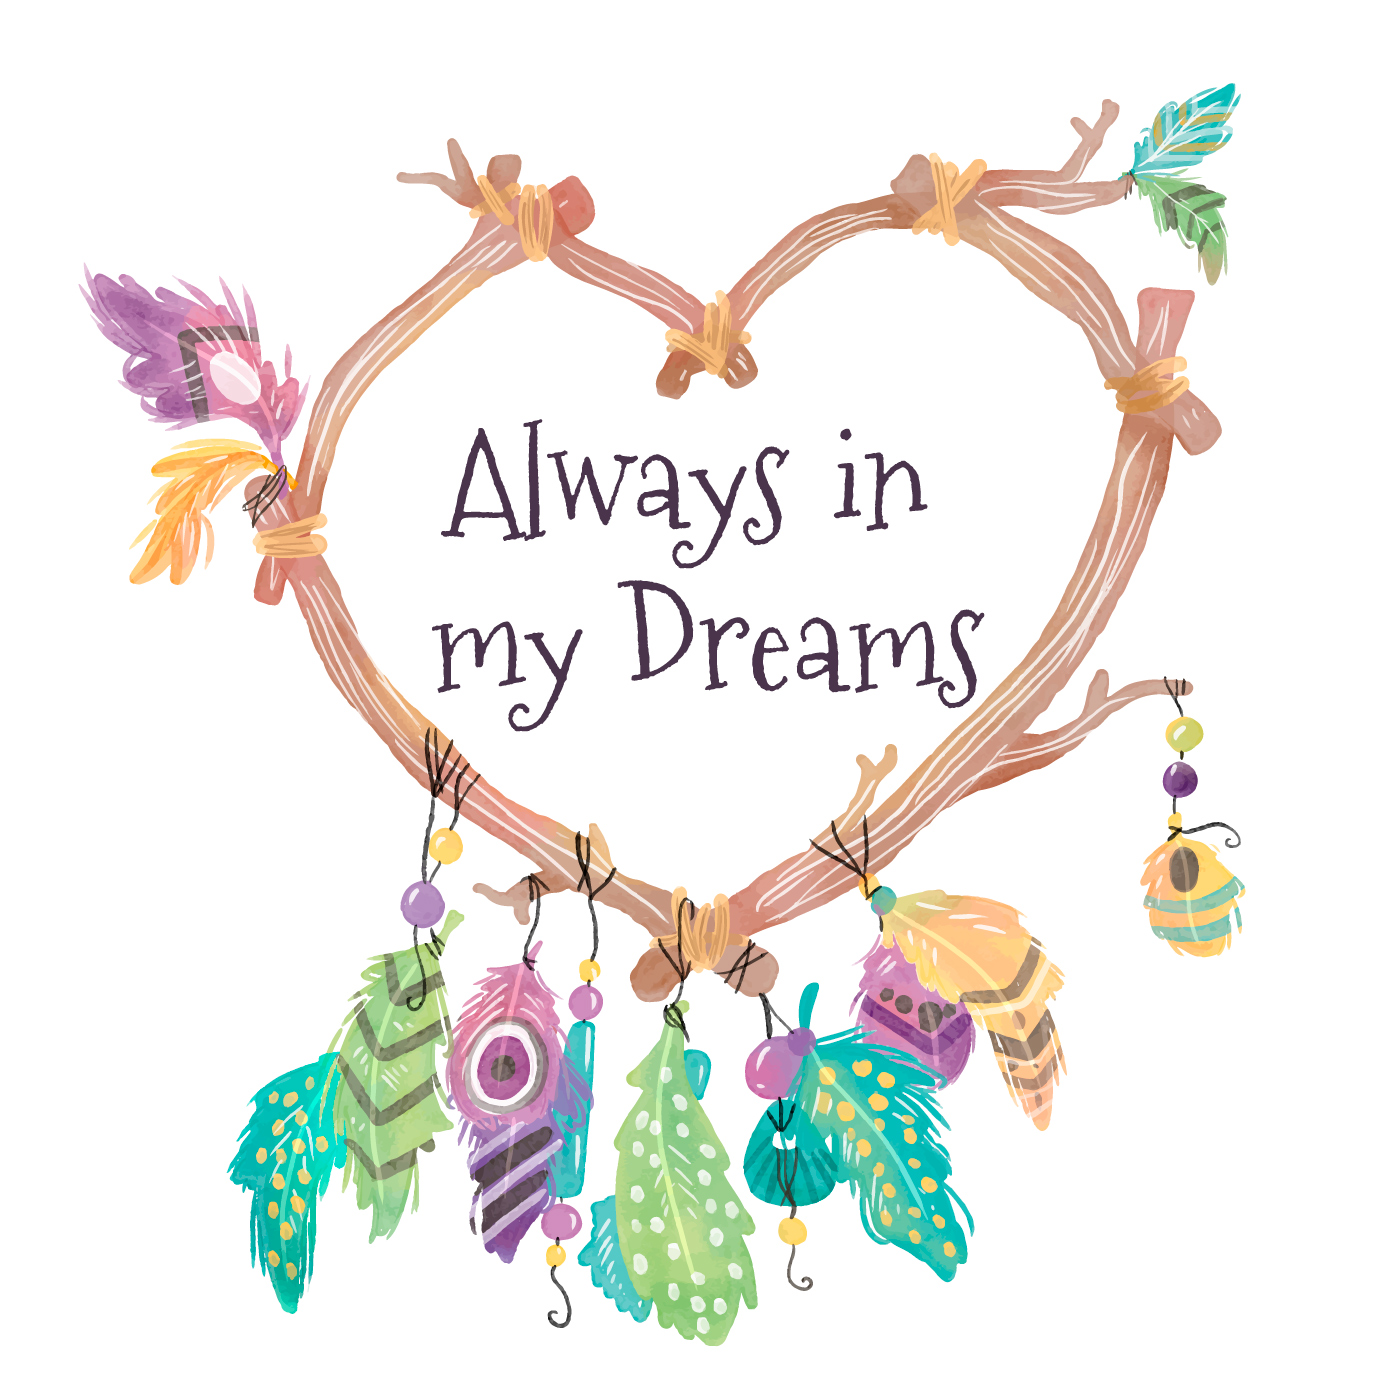 Heart Shaped Dream Catcher Drawing | Free download on ...